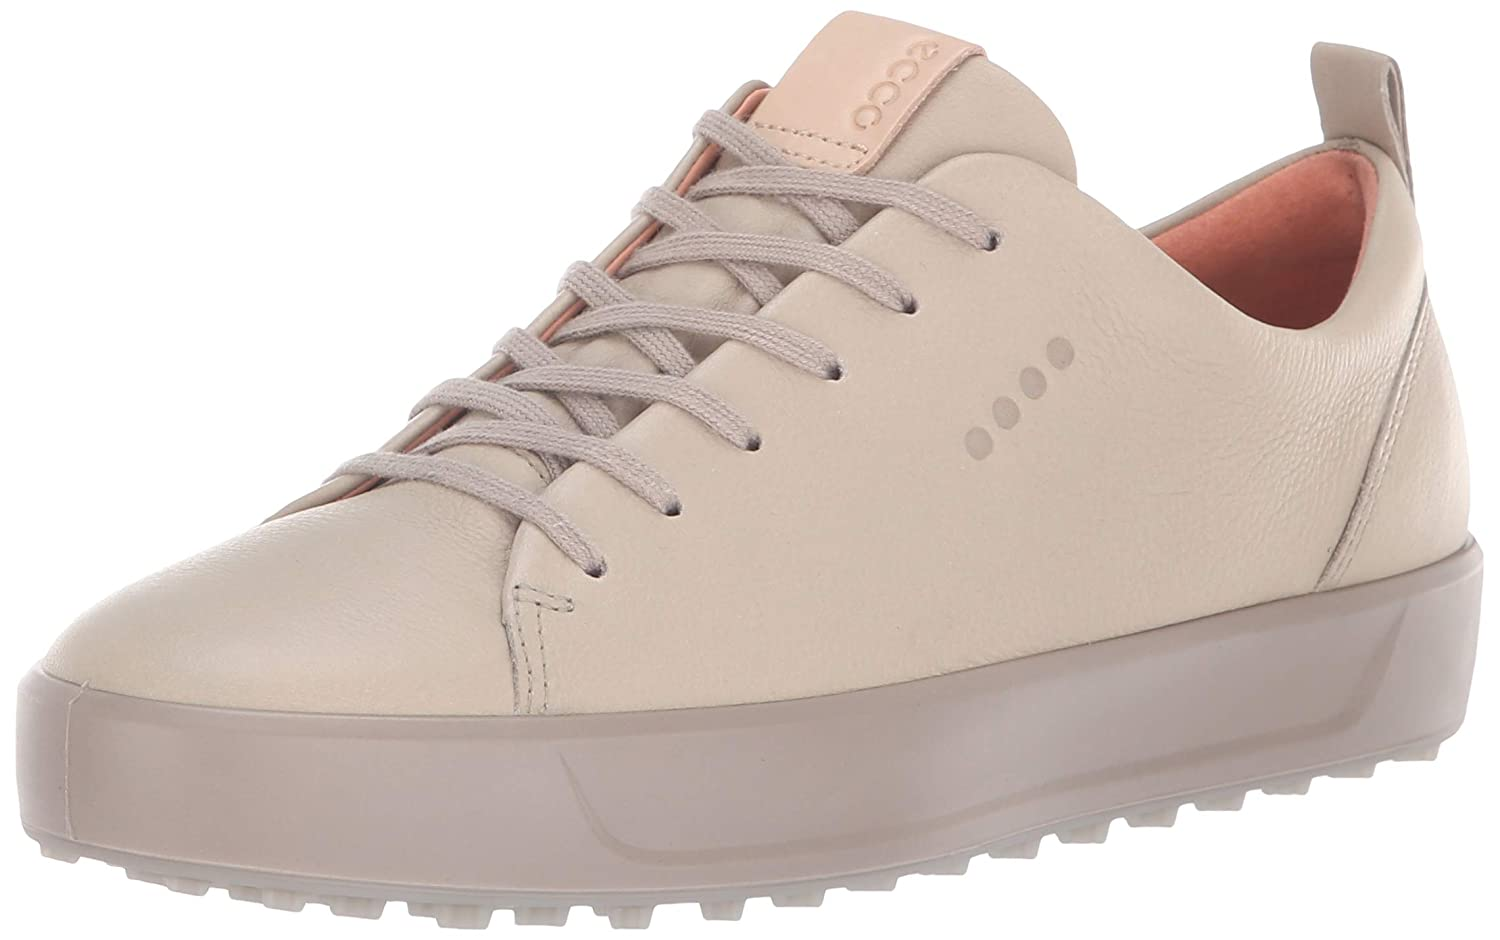 bcc64df0bc ECCO Ladies Soft Golf Shoes Ladies Oyester Euro 38 (UK 5/5.5) Regular Fit:  Amazon.co.uk: Sports & Outdoors